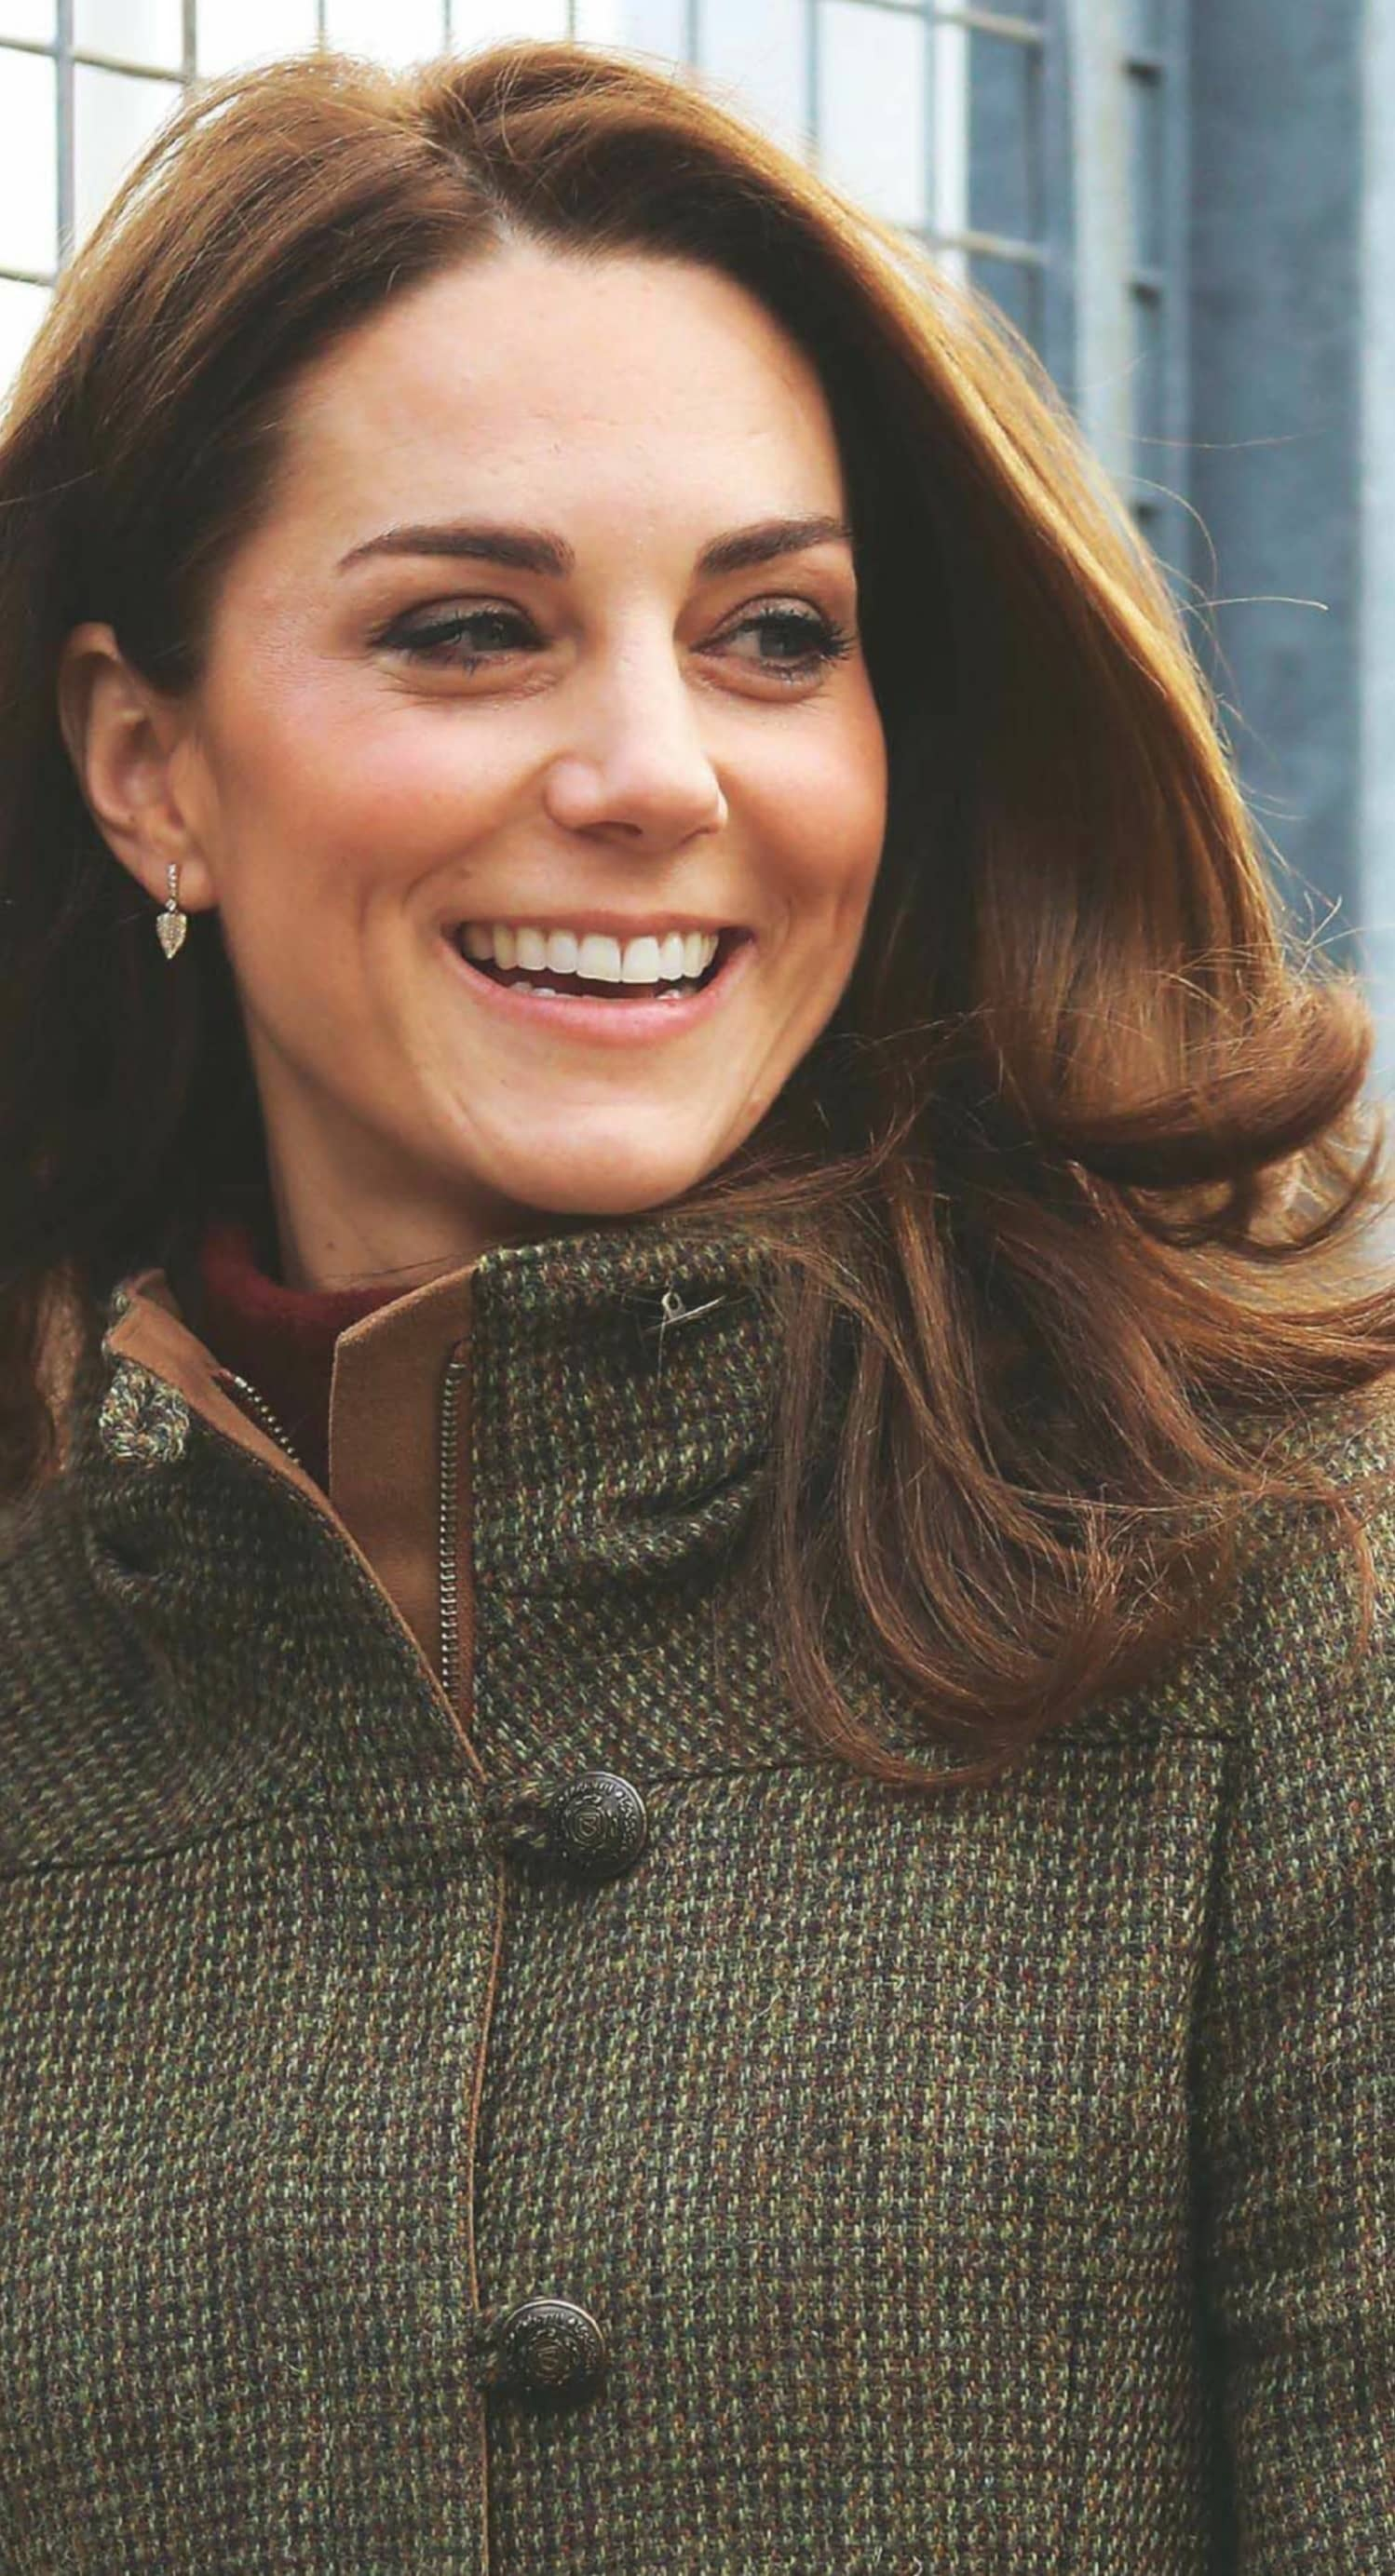 Keeping It Country Casual On Garden Visit the Duchess Of Cambridge Unveils A New Passion As Chelsea Dream Is Revealed